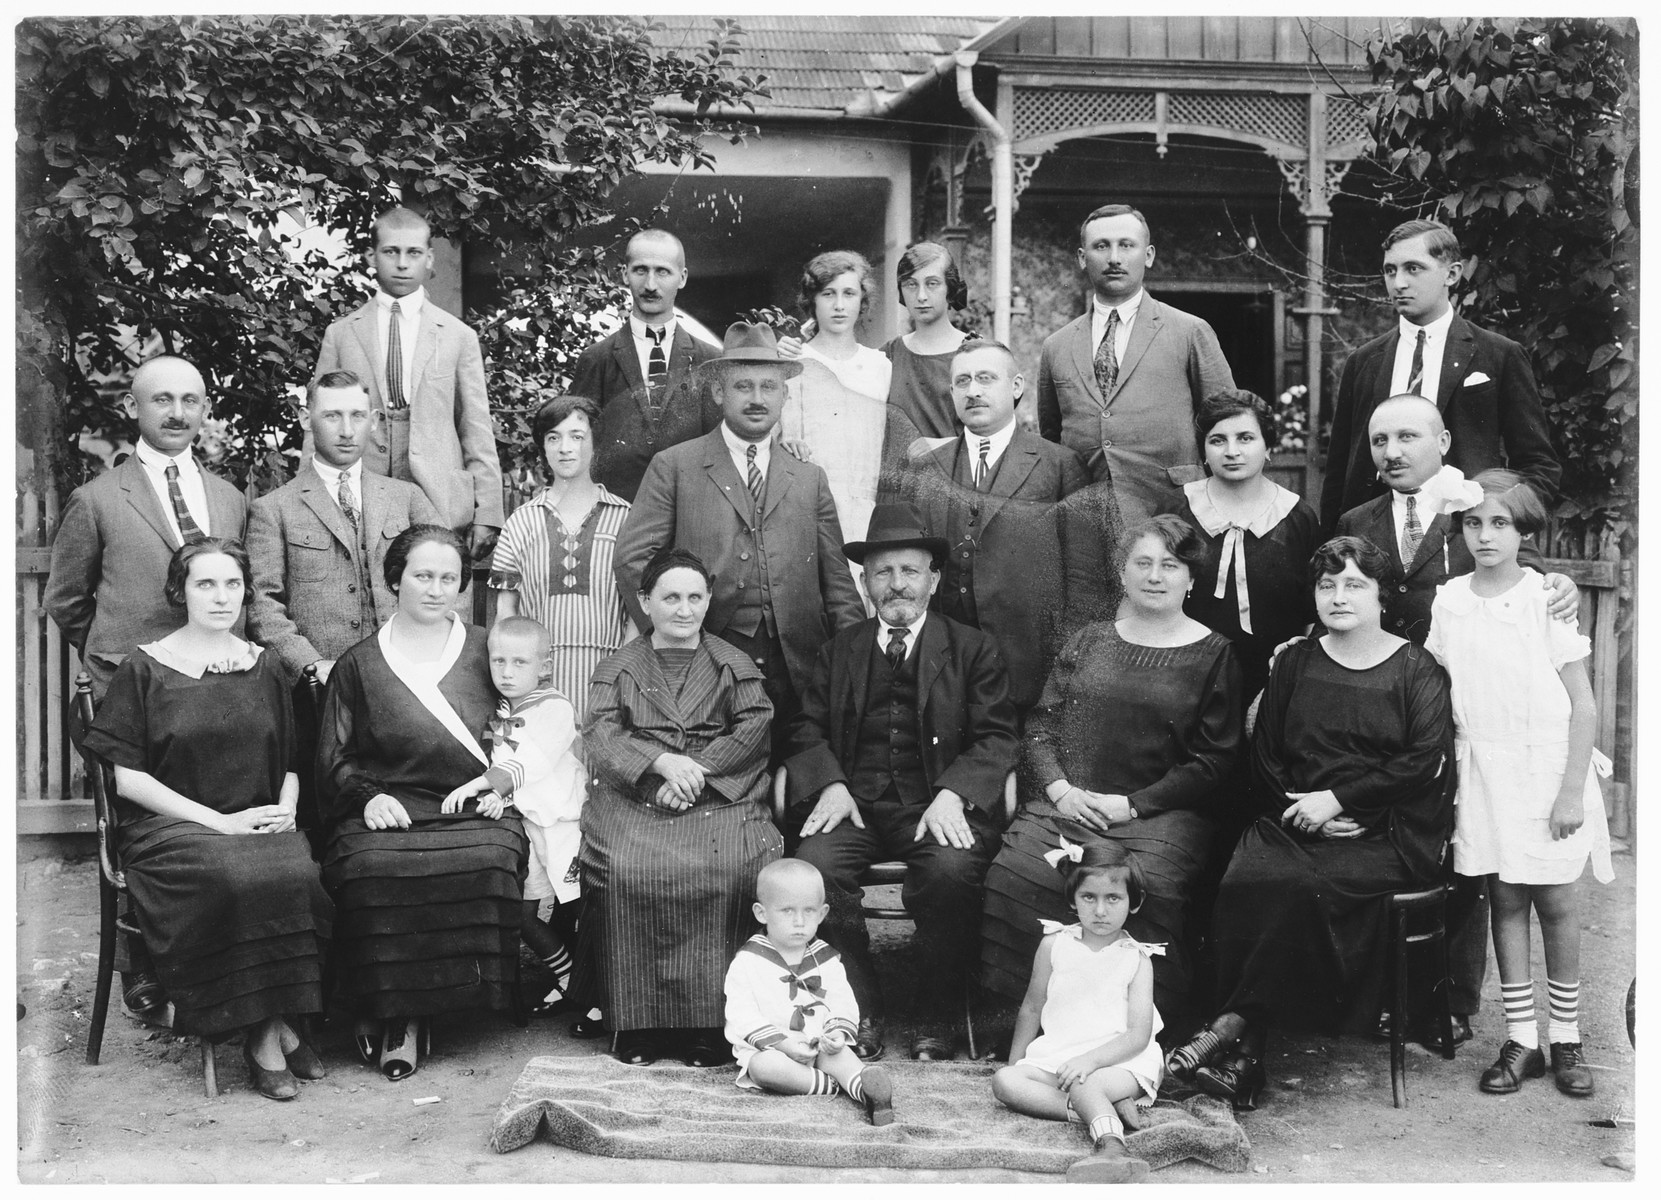 The extended Brunn family gathers in front of their home in Szendro Hungary.  Seated in front are two children: Laci Blumberger and Margit Brunn.  Front row (left to right) are Szofi Furth Brunn, Margit Brunn Blumberger, Hermina Reichmann Brunn, Mor Brunn, Imre Blumberger, Mrs. Ignacz Brunn and Hermine Brunn.  Second row: Wilmos Brunn, Sandor Blumberger, Mrs. Jozef Brunn, Samu Brunn, Ignacz Brunn, Rozsi Brunn and Haim Brunn.  Top row: Gyula Neuman, Jozef Brunn, Jolan Brunn, ? Brunn and Jajos Brunn.